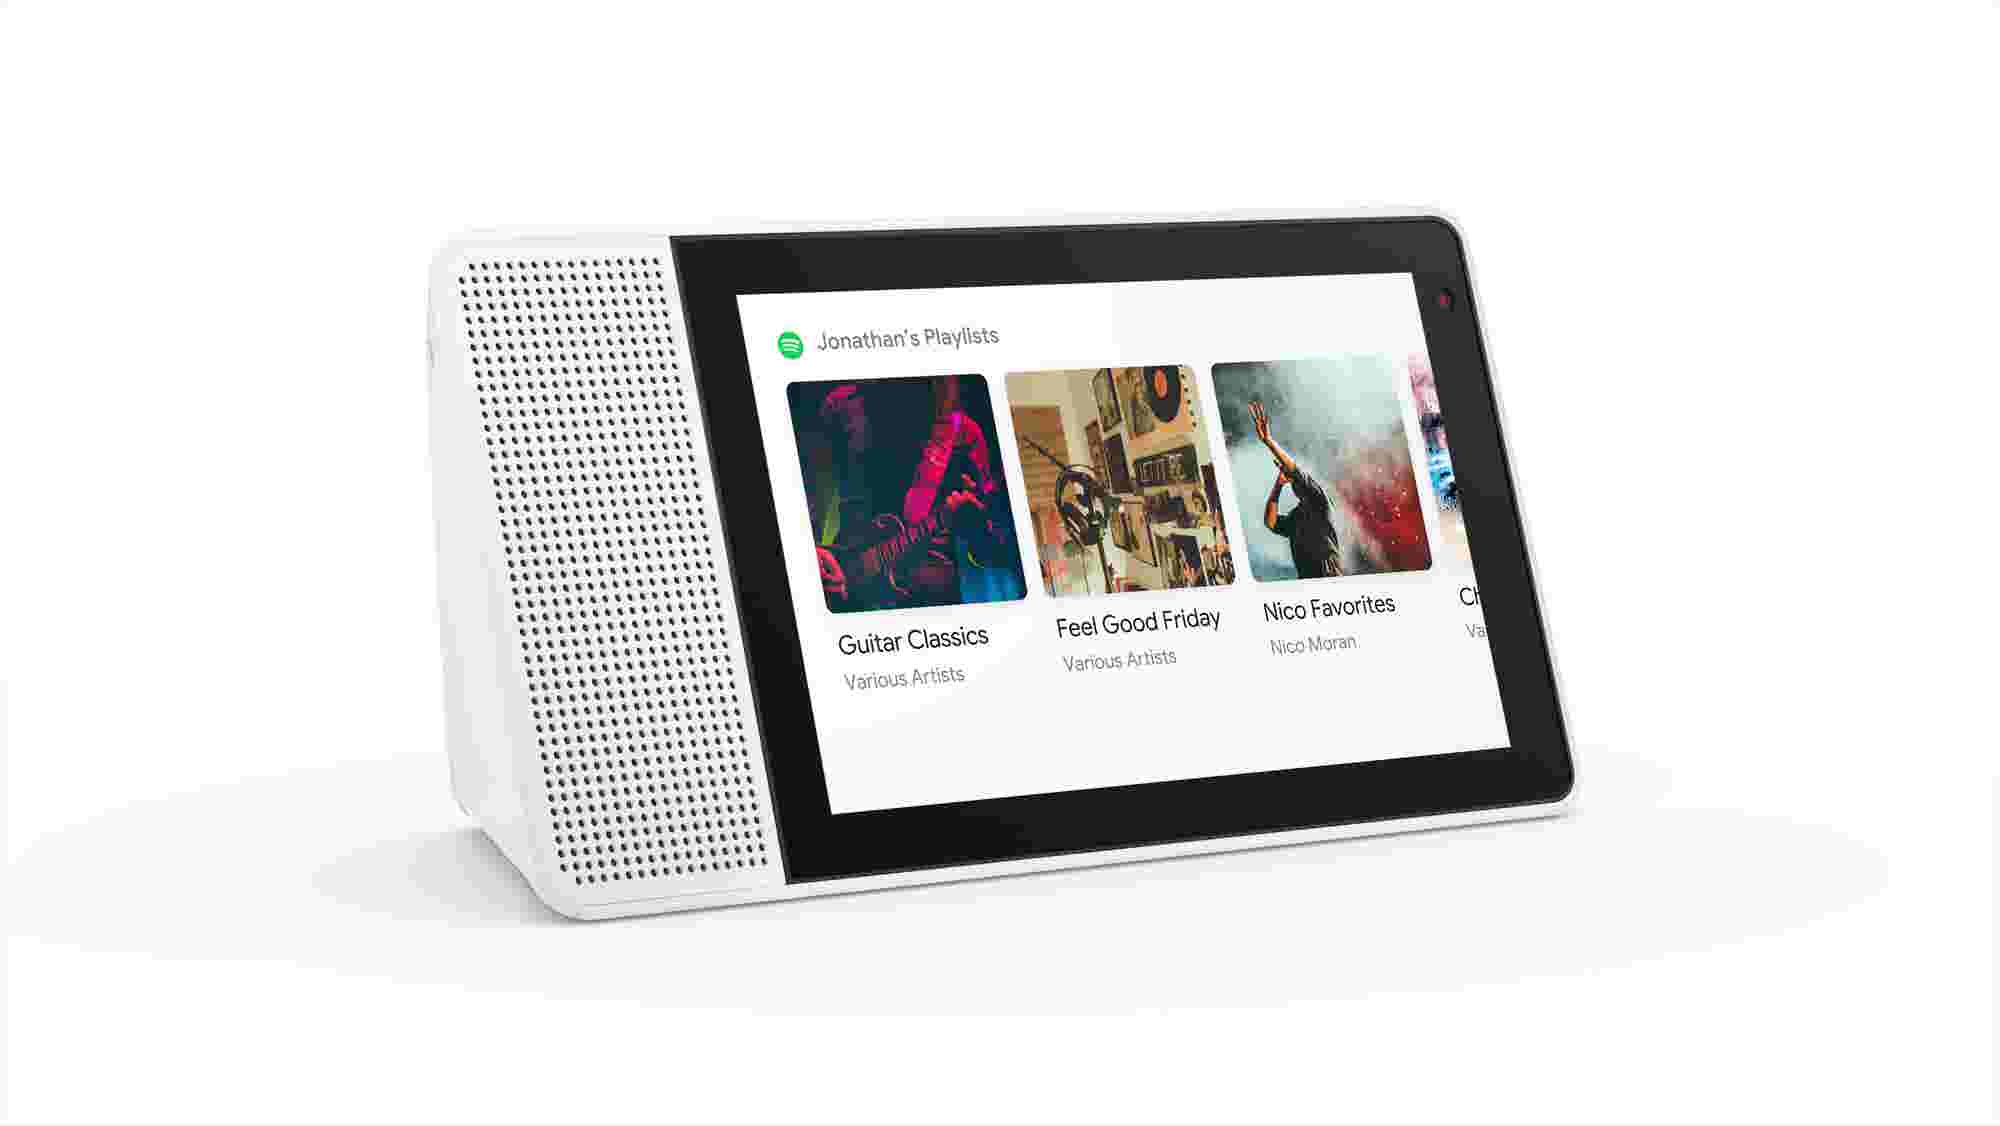 Lenovo's new Smart Display is here to take on Amazon's Echo Show